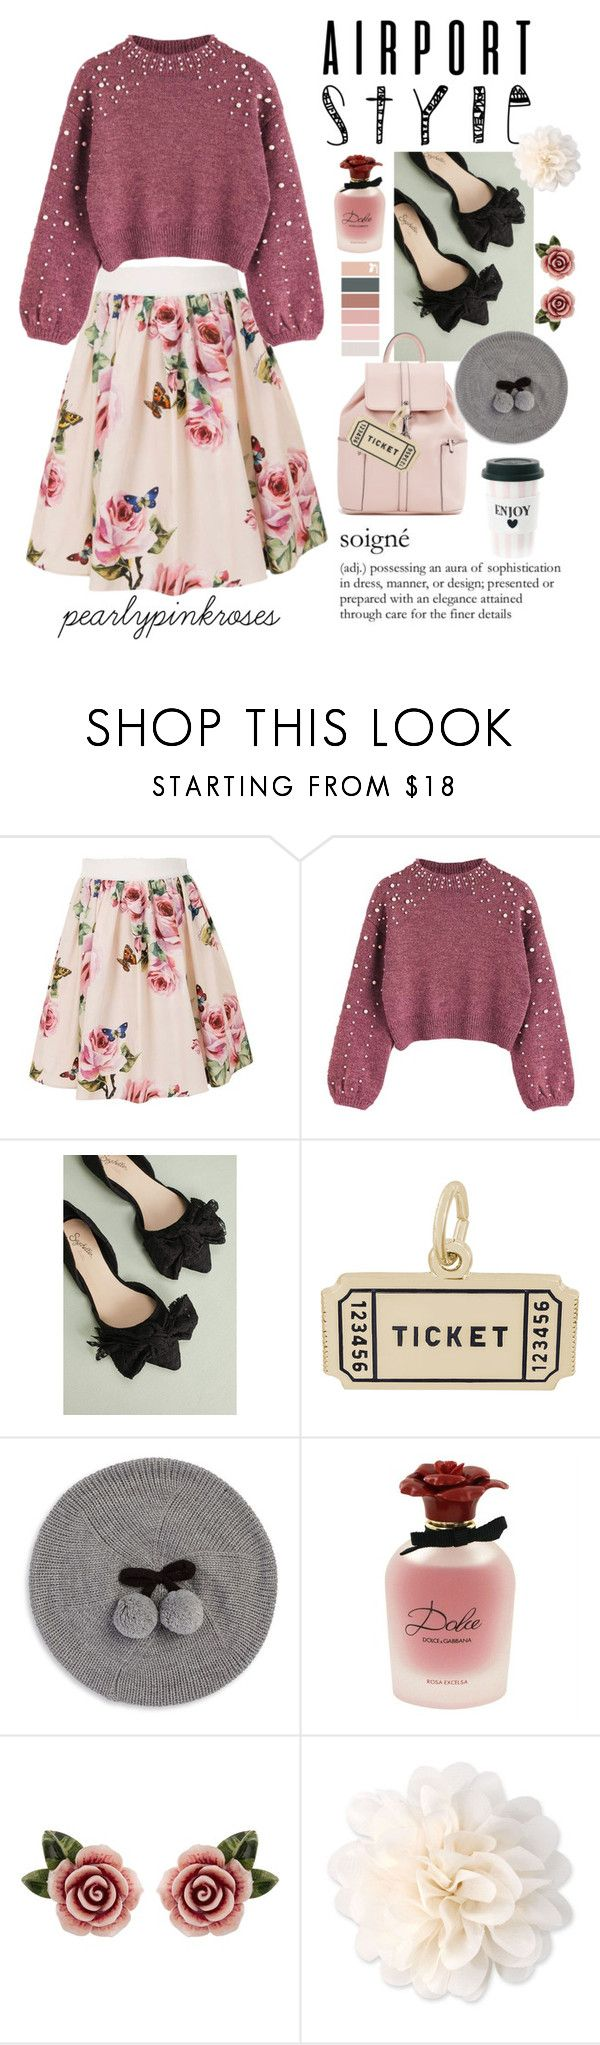 """""""Airport Style"""" by pearlypinkroses ❤ liked on Polyvore featuring Dolce&Gabbana, Seychelles, Rembrandt Charms, Kate Spade, Miss Étoile and vintage"""